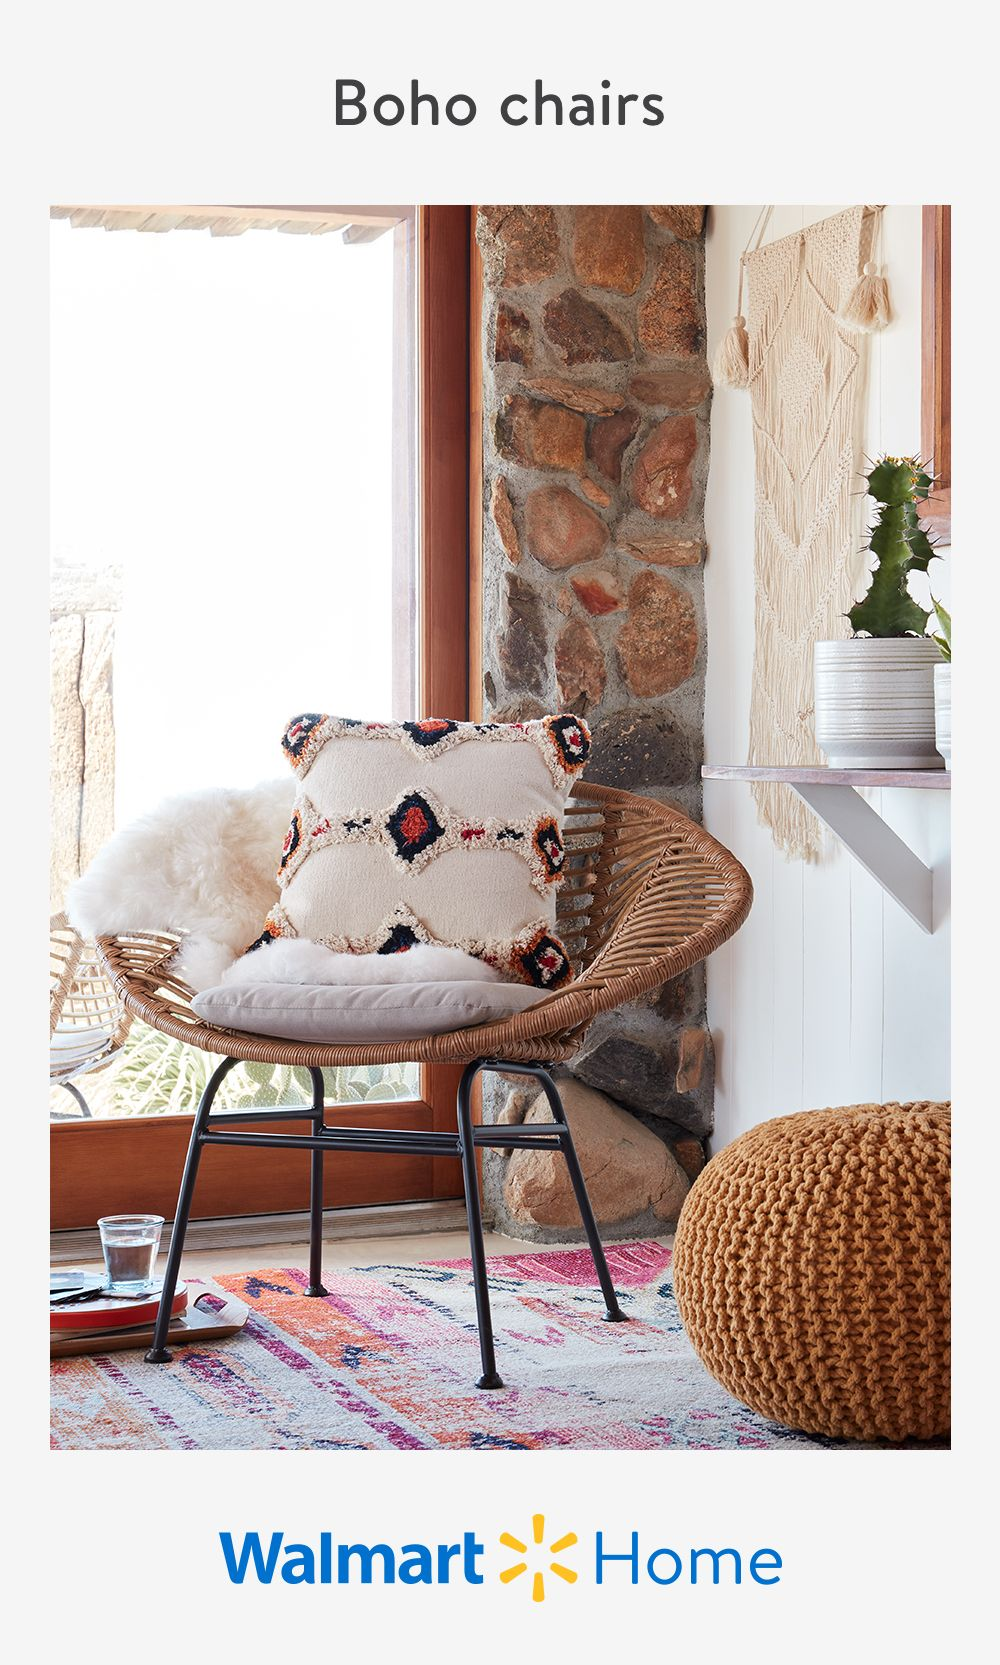 Accent Chairs Are An Easy Way To Add A Touch Of Style To Every Space Whether You Re Dressing Up A Reading Nook Completin In 2020 Home Decor Decor Living Room Seating